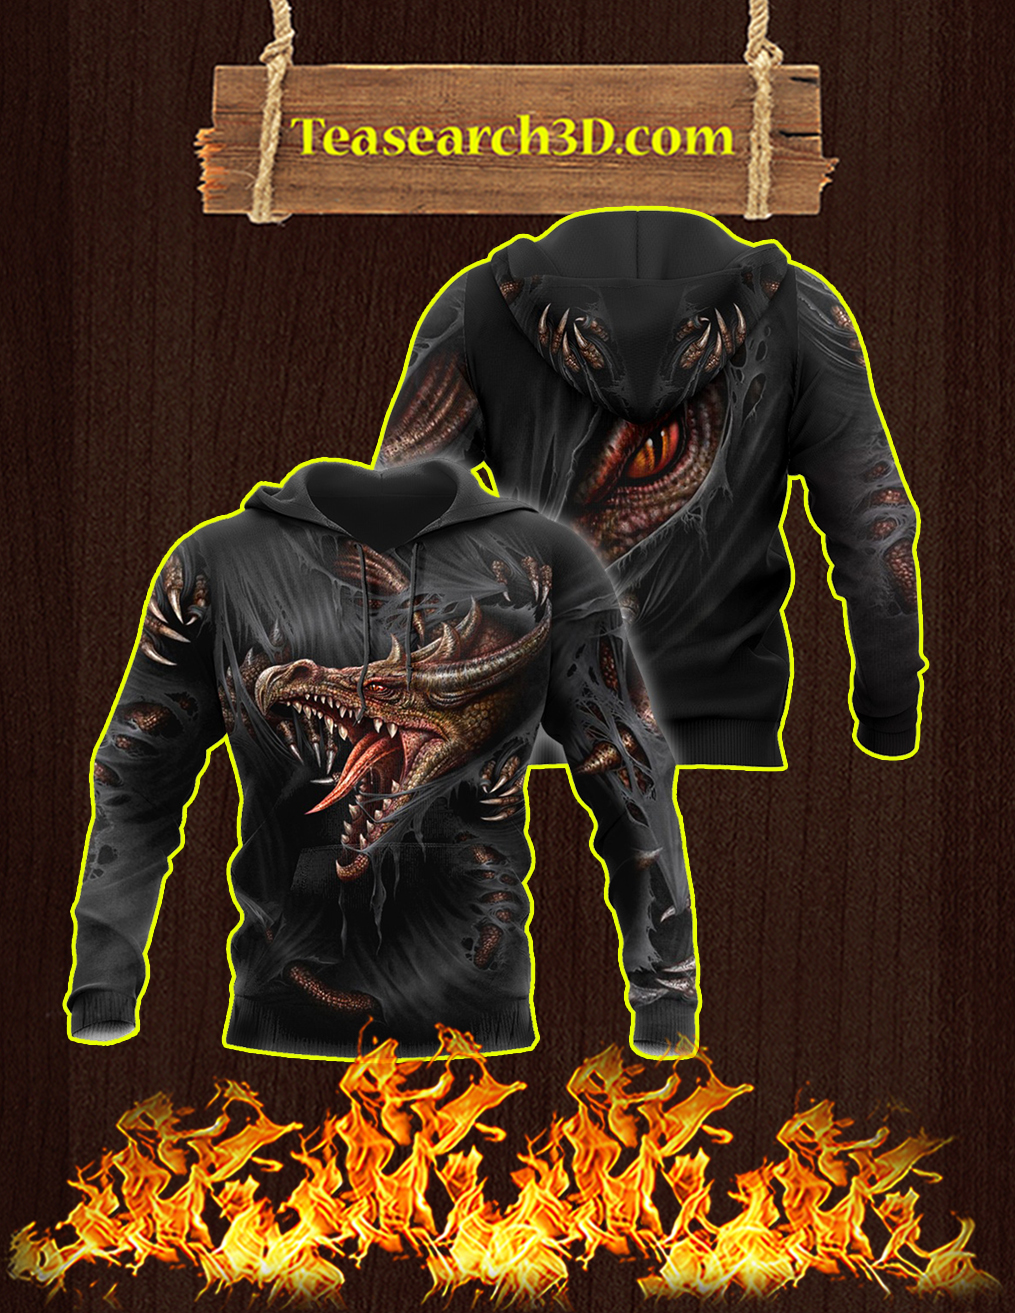 3D Armor Tattoo and Dungeon Dragon Hoodie